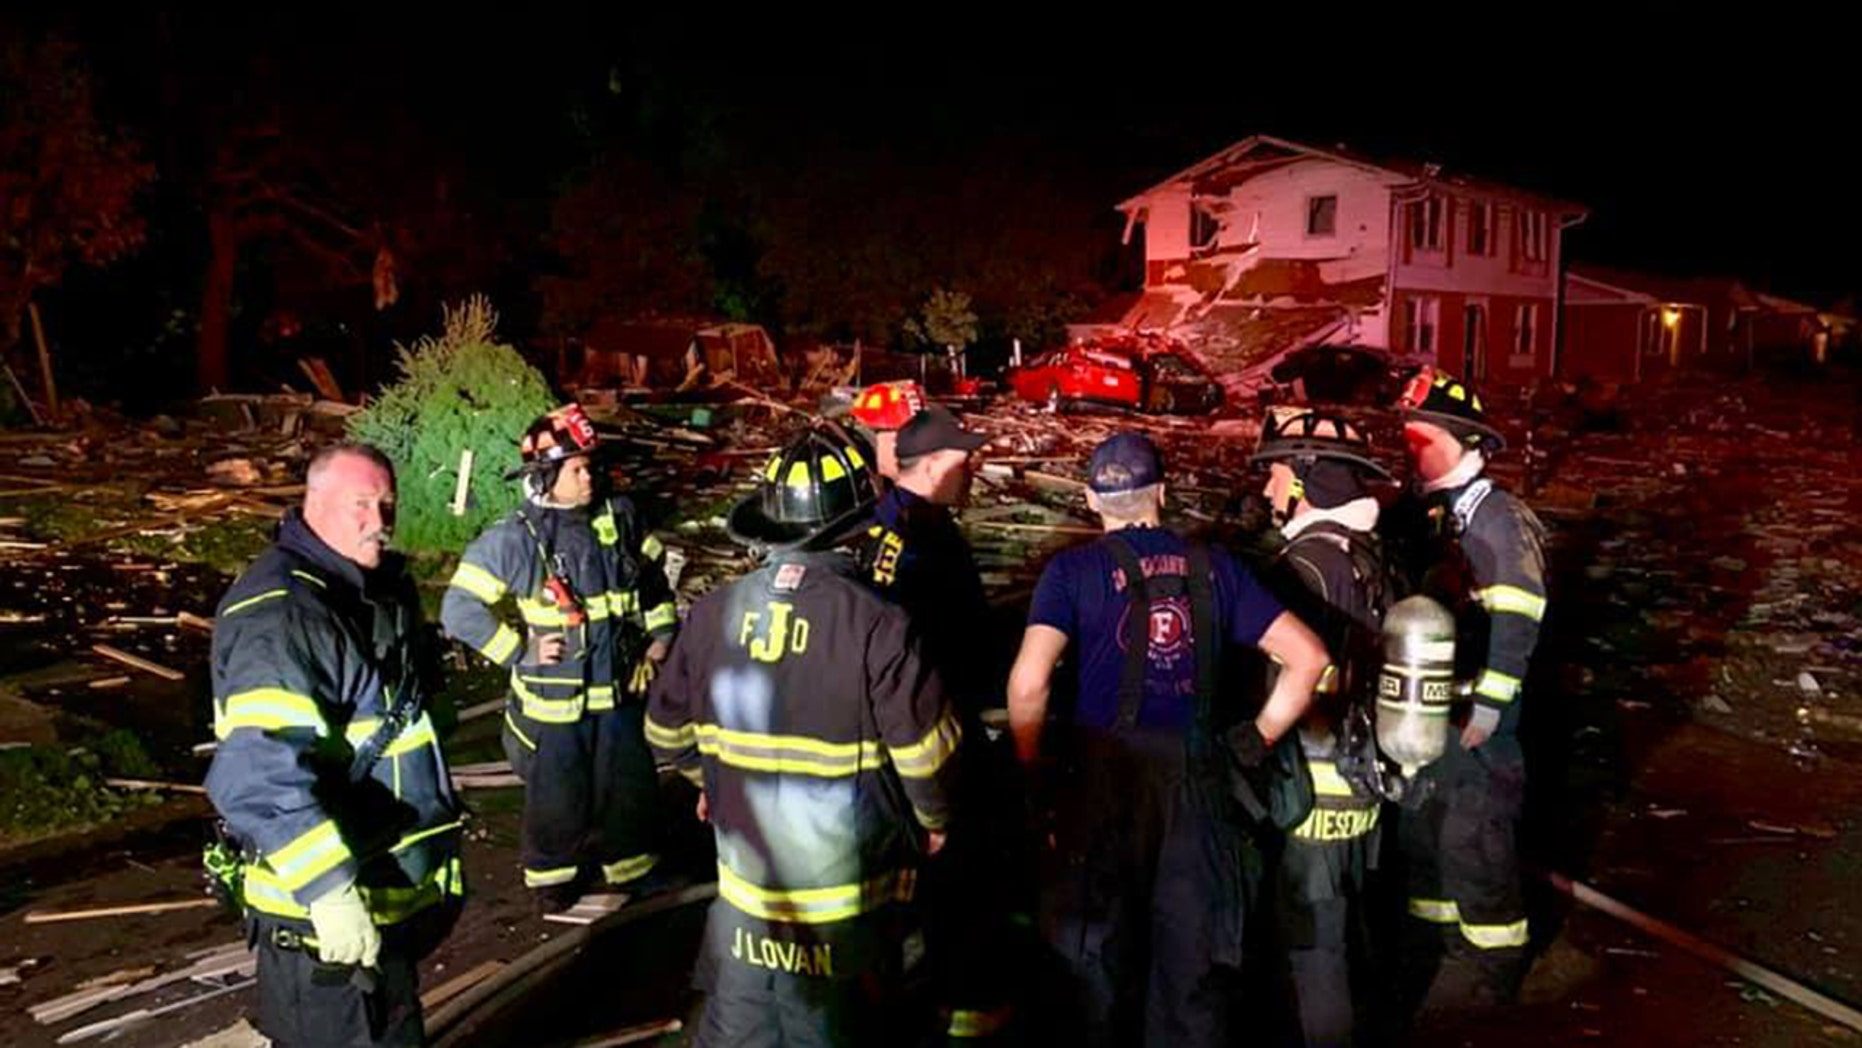 One person is dead and two more are injured after an explosion decimated a home in Jeffersonville, Indiana early on Sunday morning